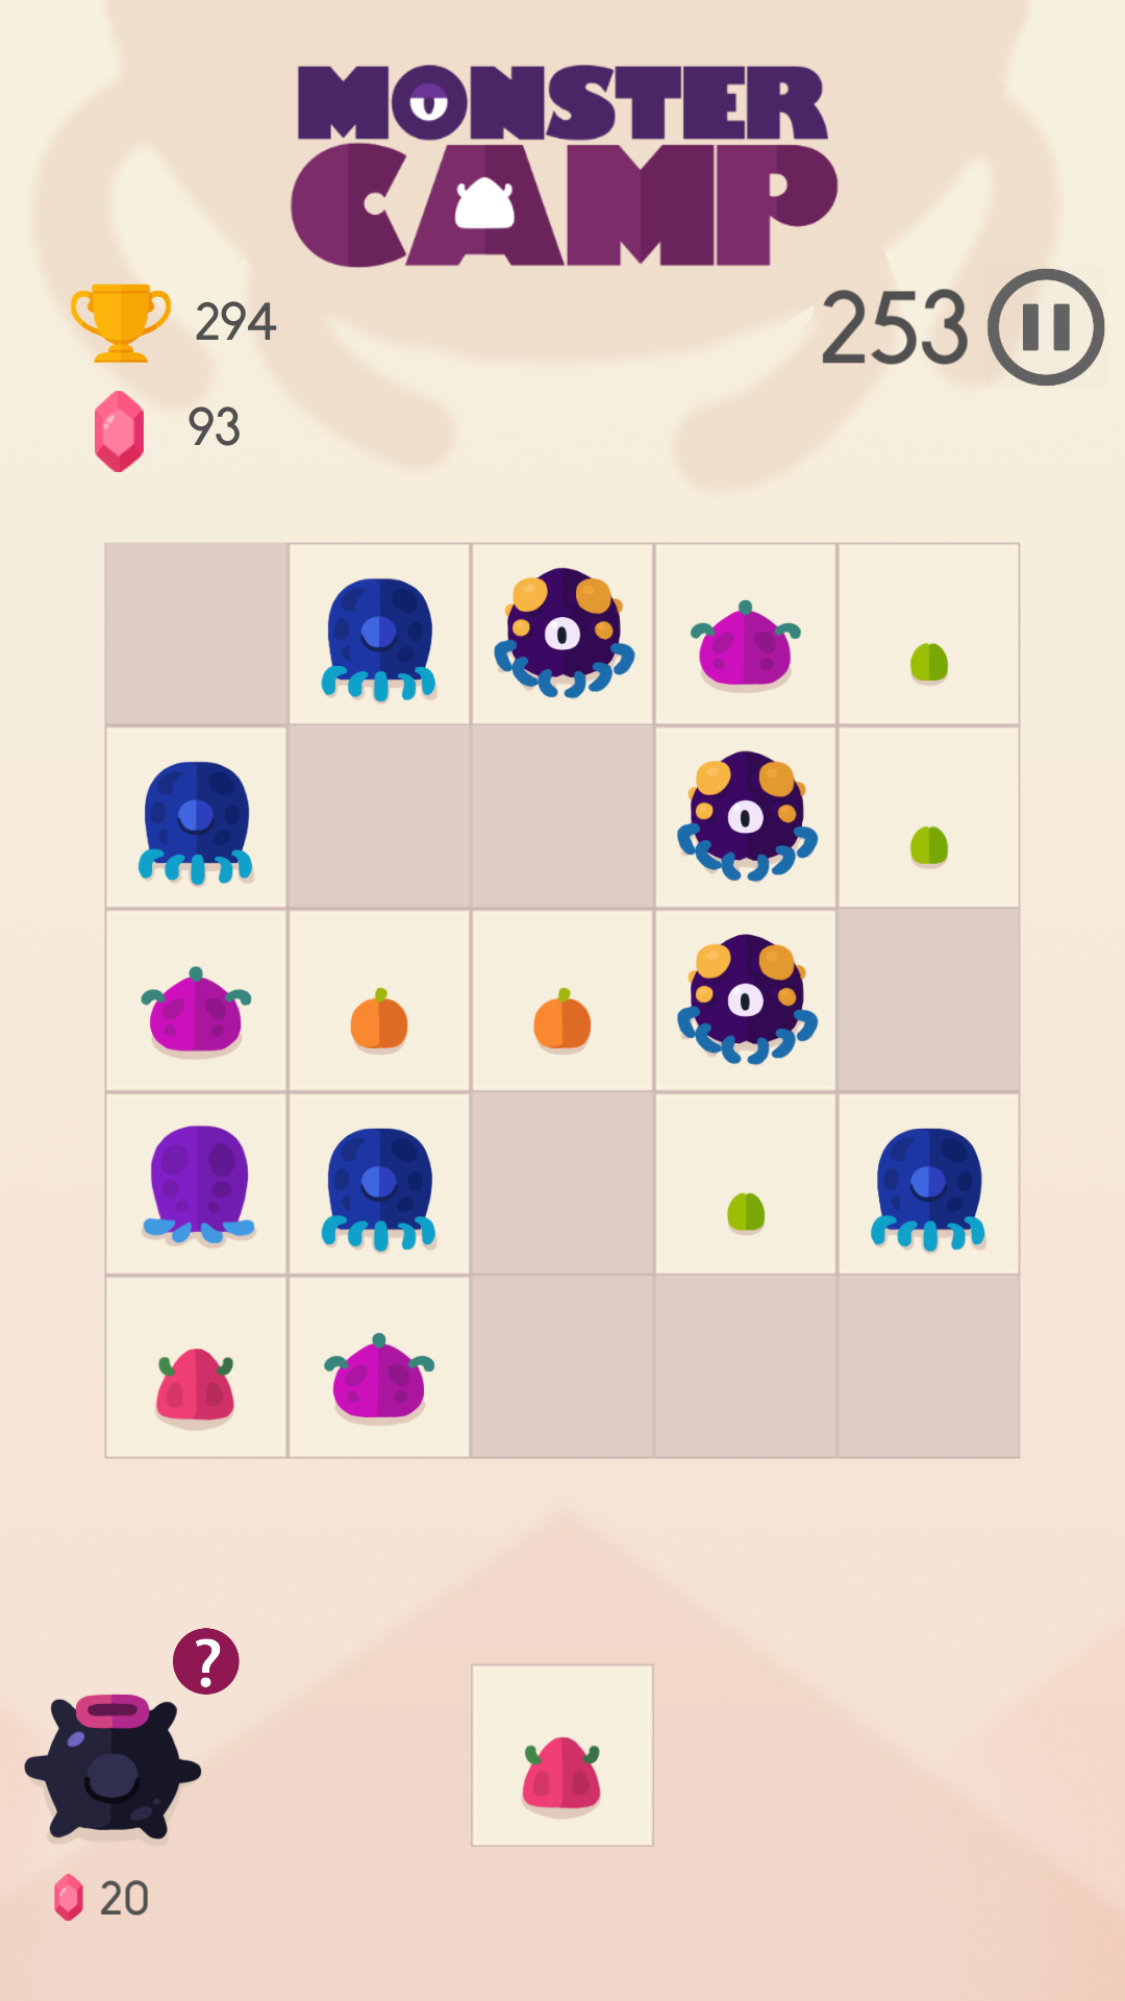 Monster Camp 1.0 launched for iOS/Android - Innovative Puzzle Match Game Image